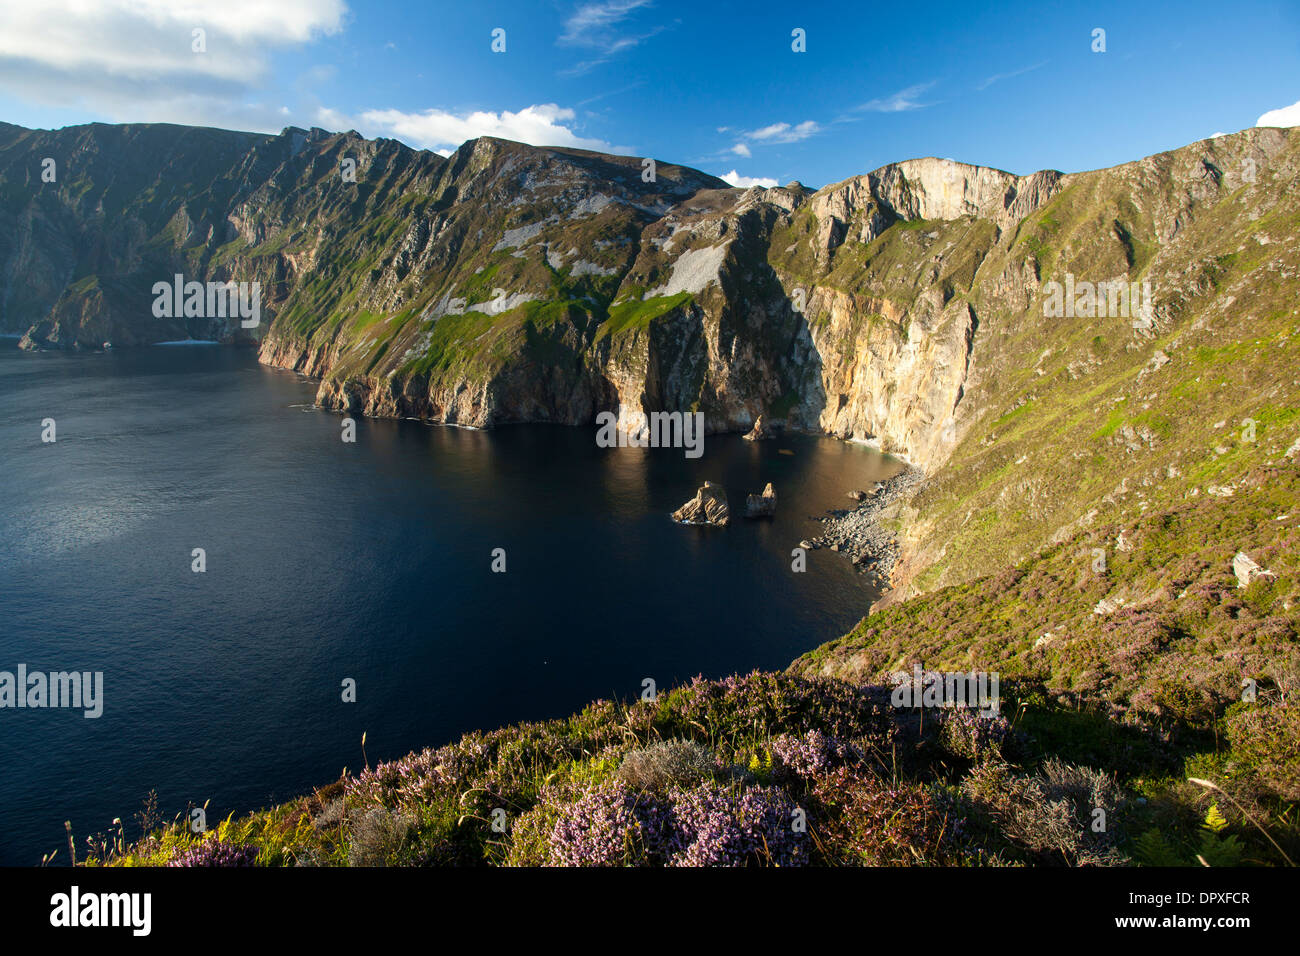 View across the Slieve League cliffs from Bunglas, County Donegal, Ireland - Stock Image